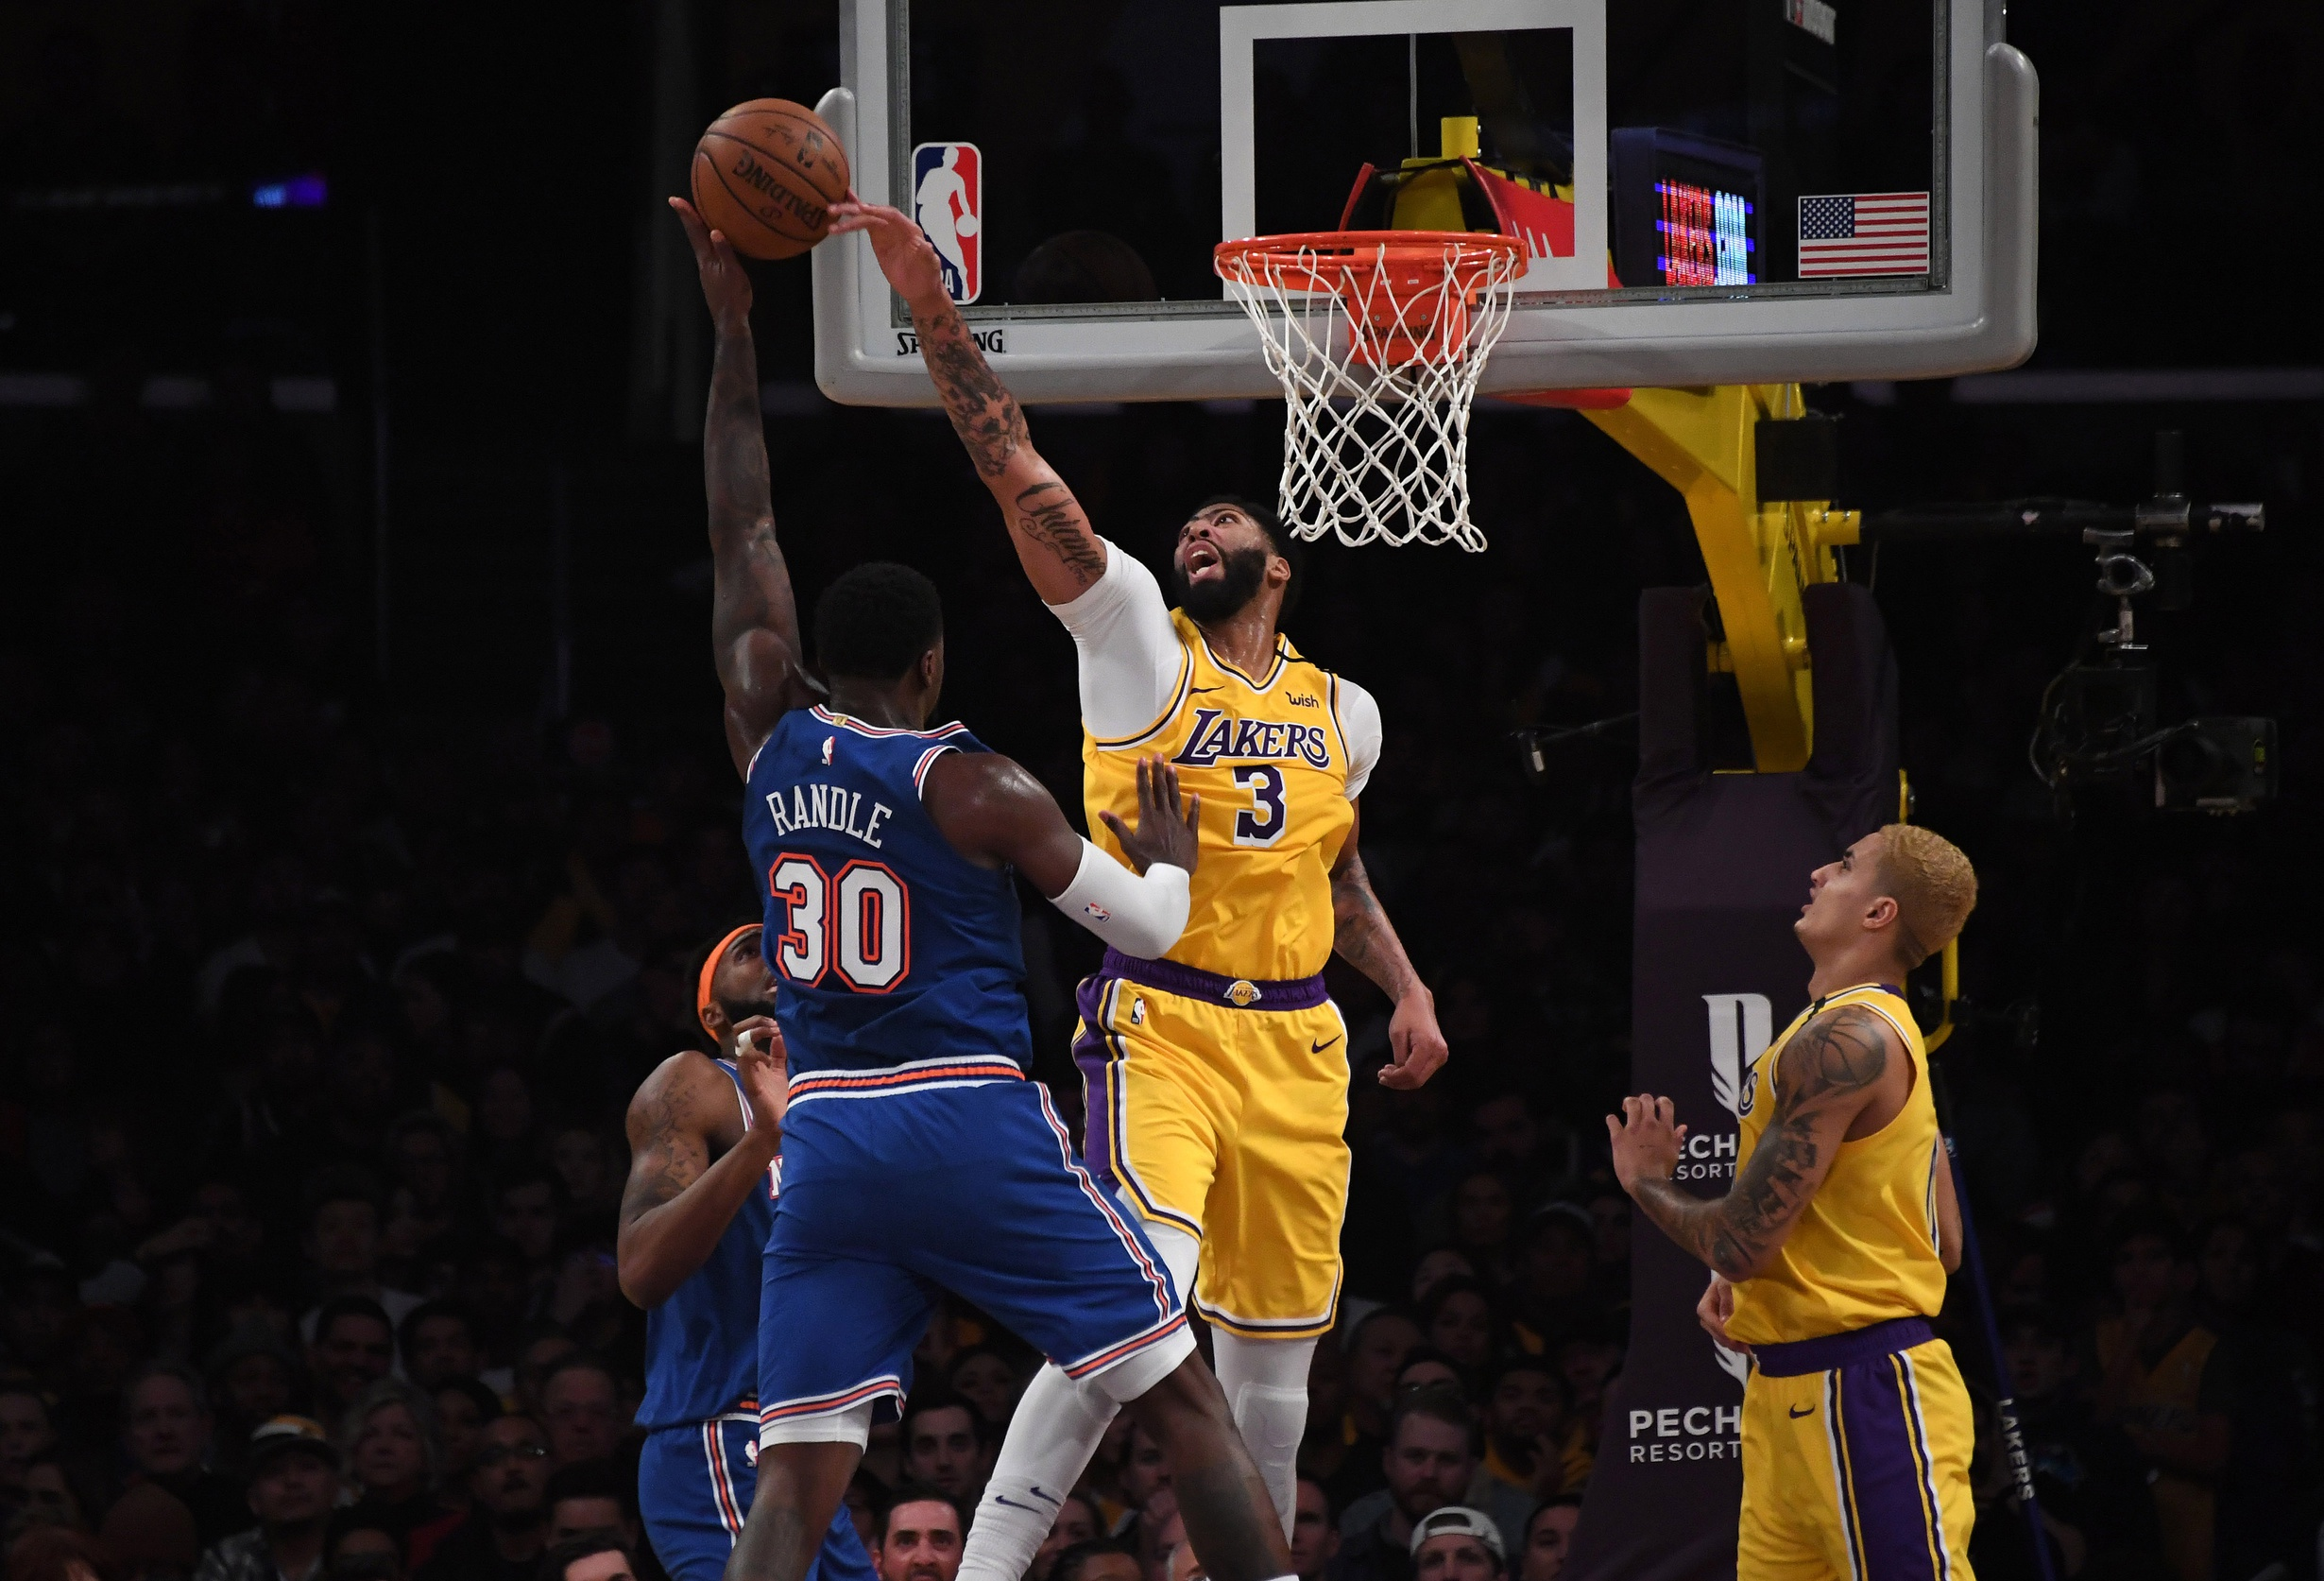 Lakers host Knicks, try to keep pace in West race